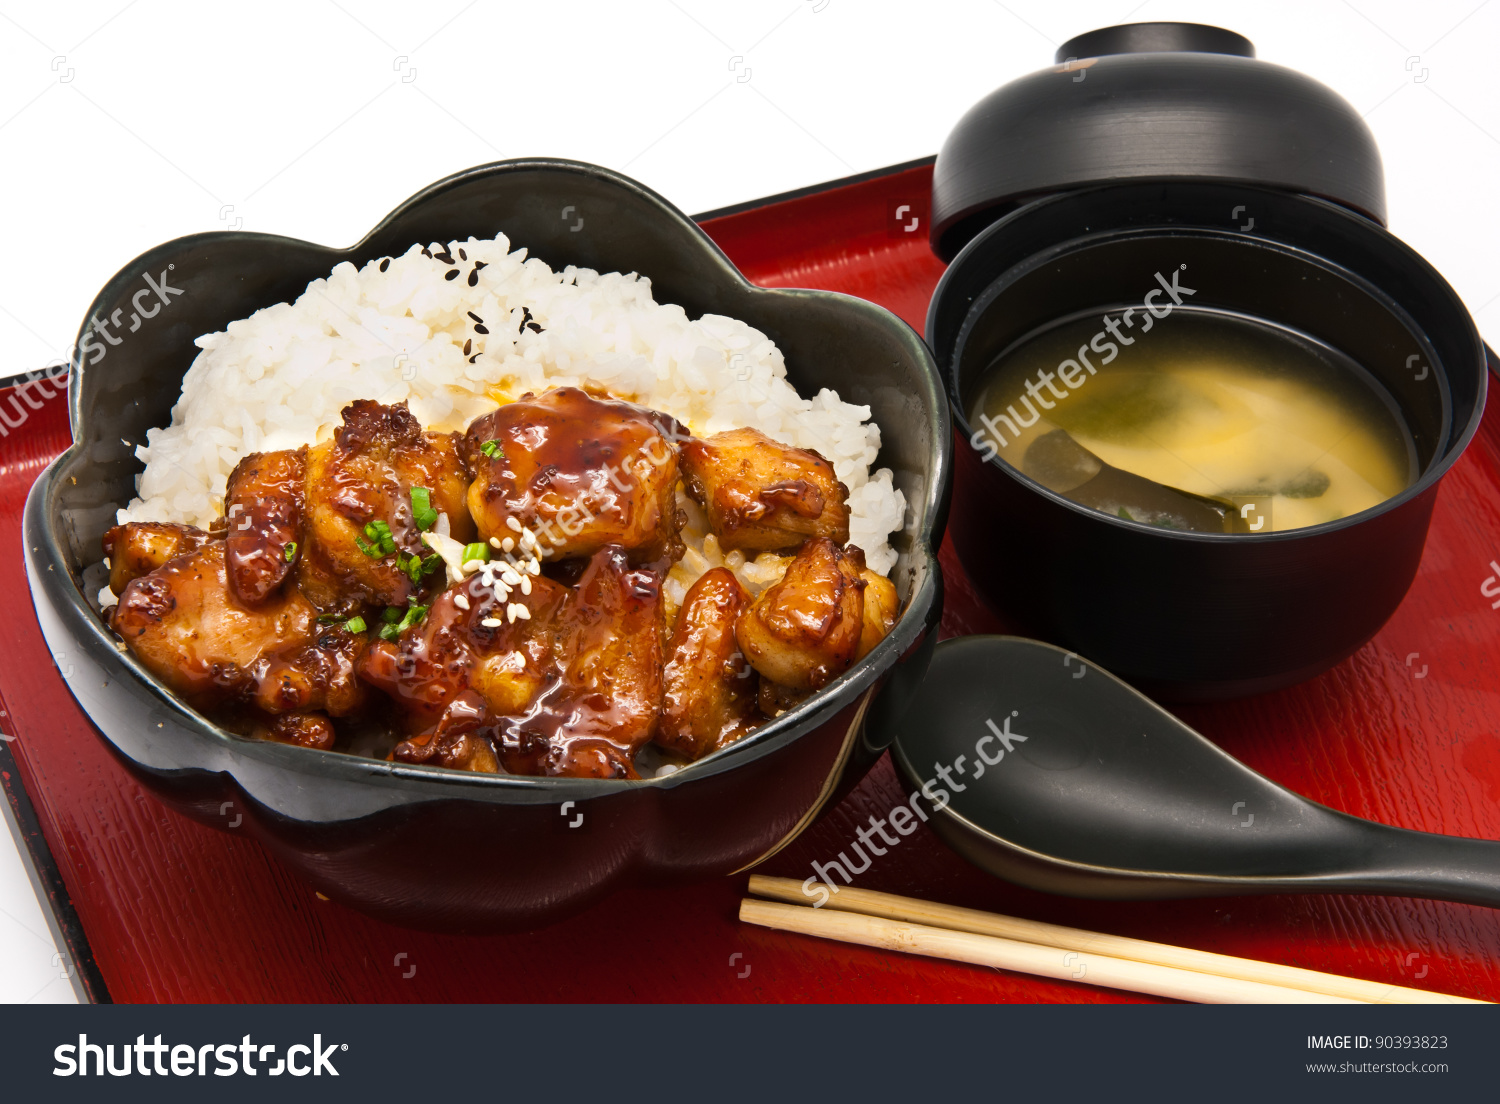 Bento Japanese Food Style Rice Chicken Stock Photo 90393823.